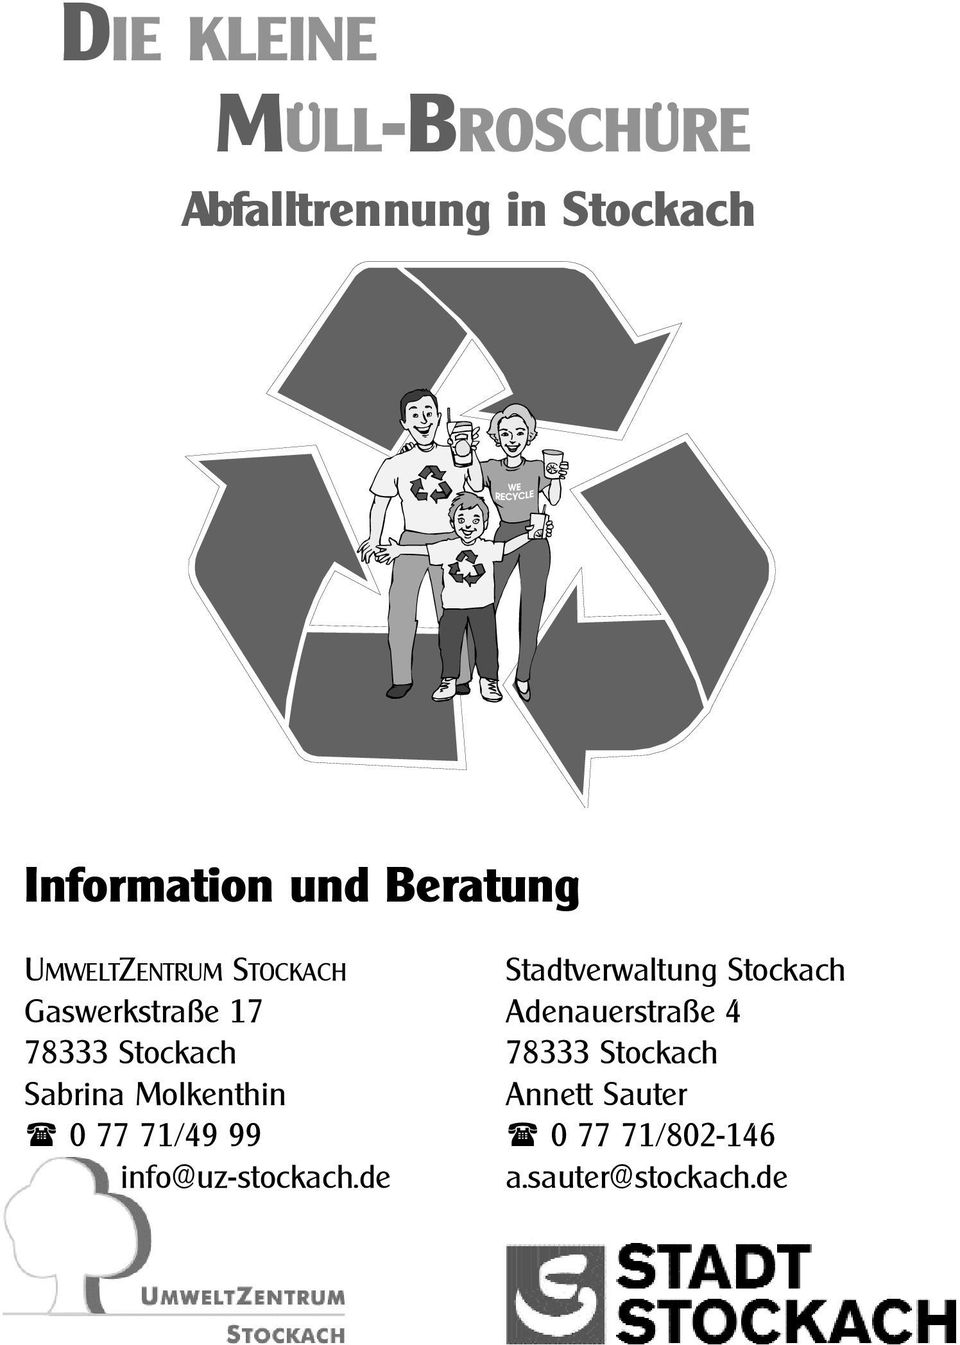 Wurst Fensterbau Stockach wurst fensterbau stockach andreas czymmeck talstrae d telefax